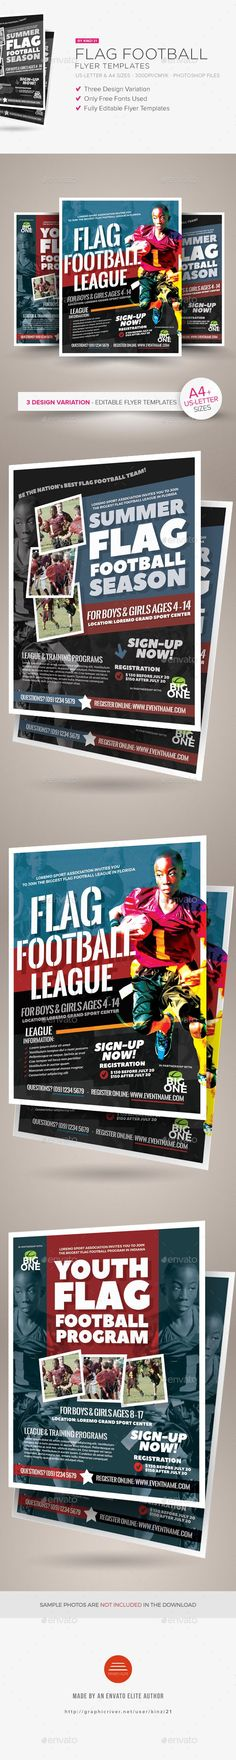 Flag Football Flyer Templates - Sports Events (scheduled via http://www.tailwindapp.com?utm_source=pinterest&utm_medium=twpin)